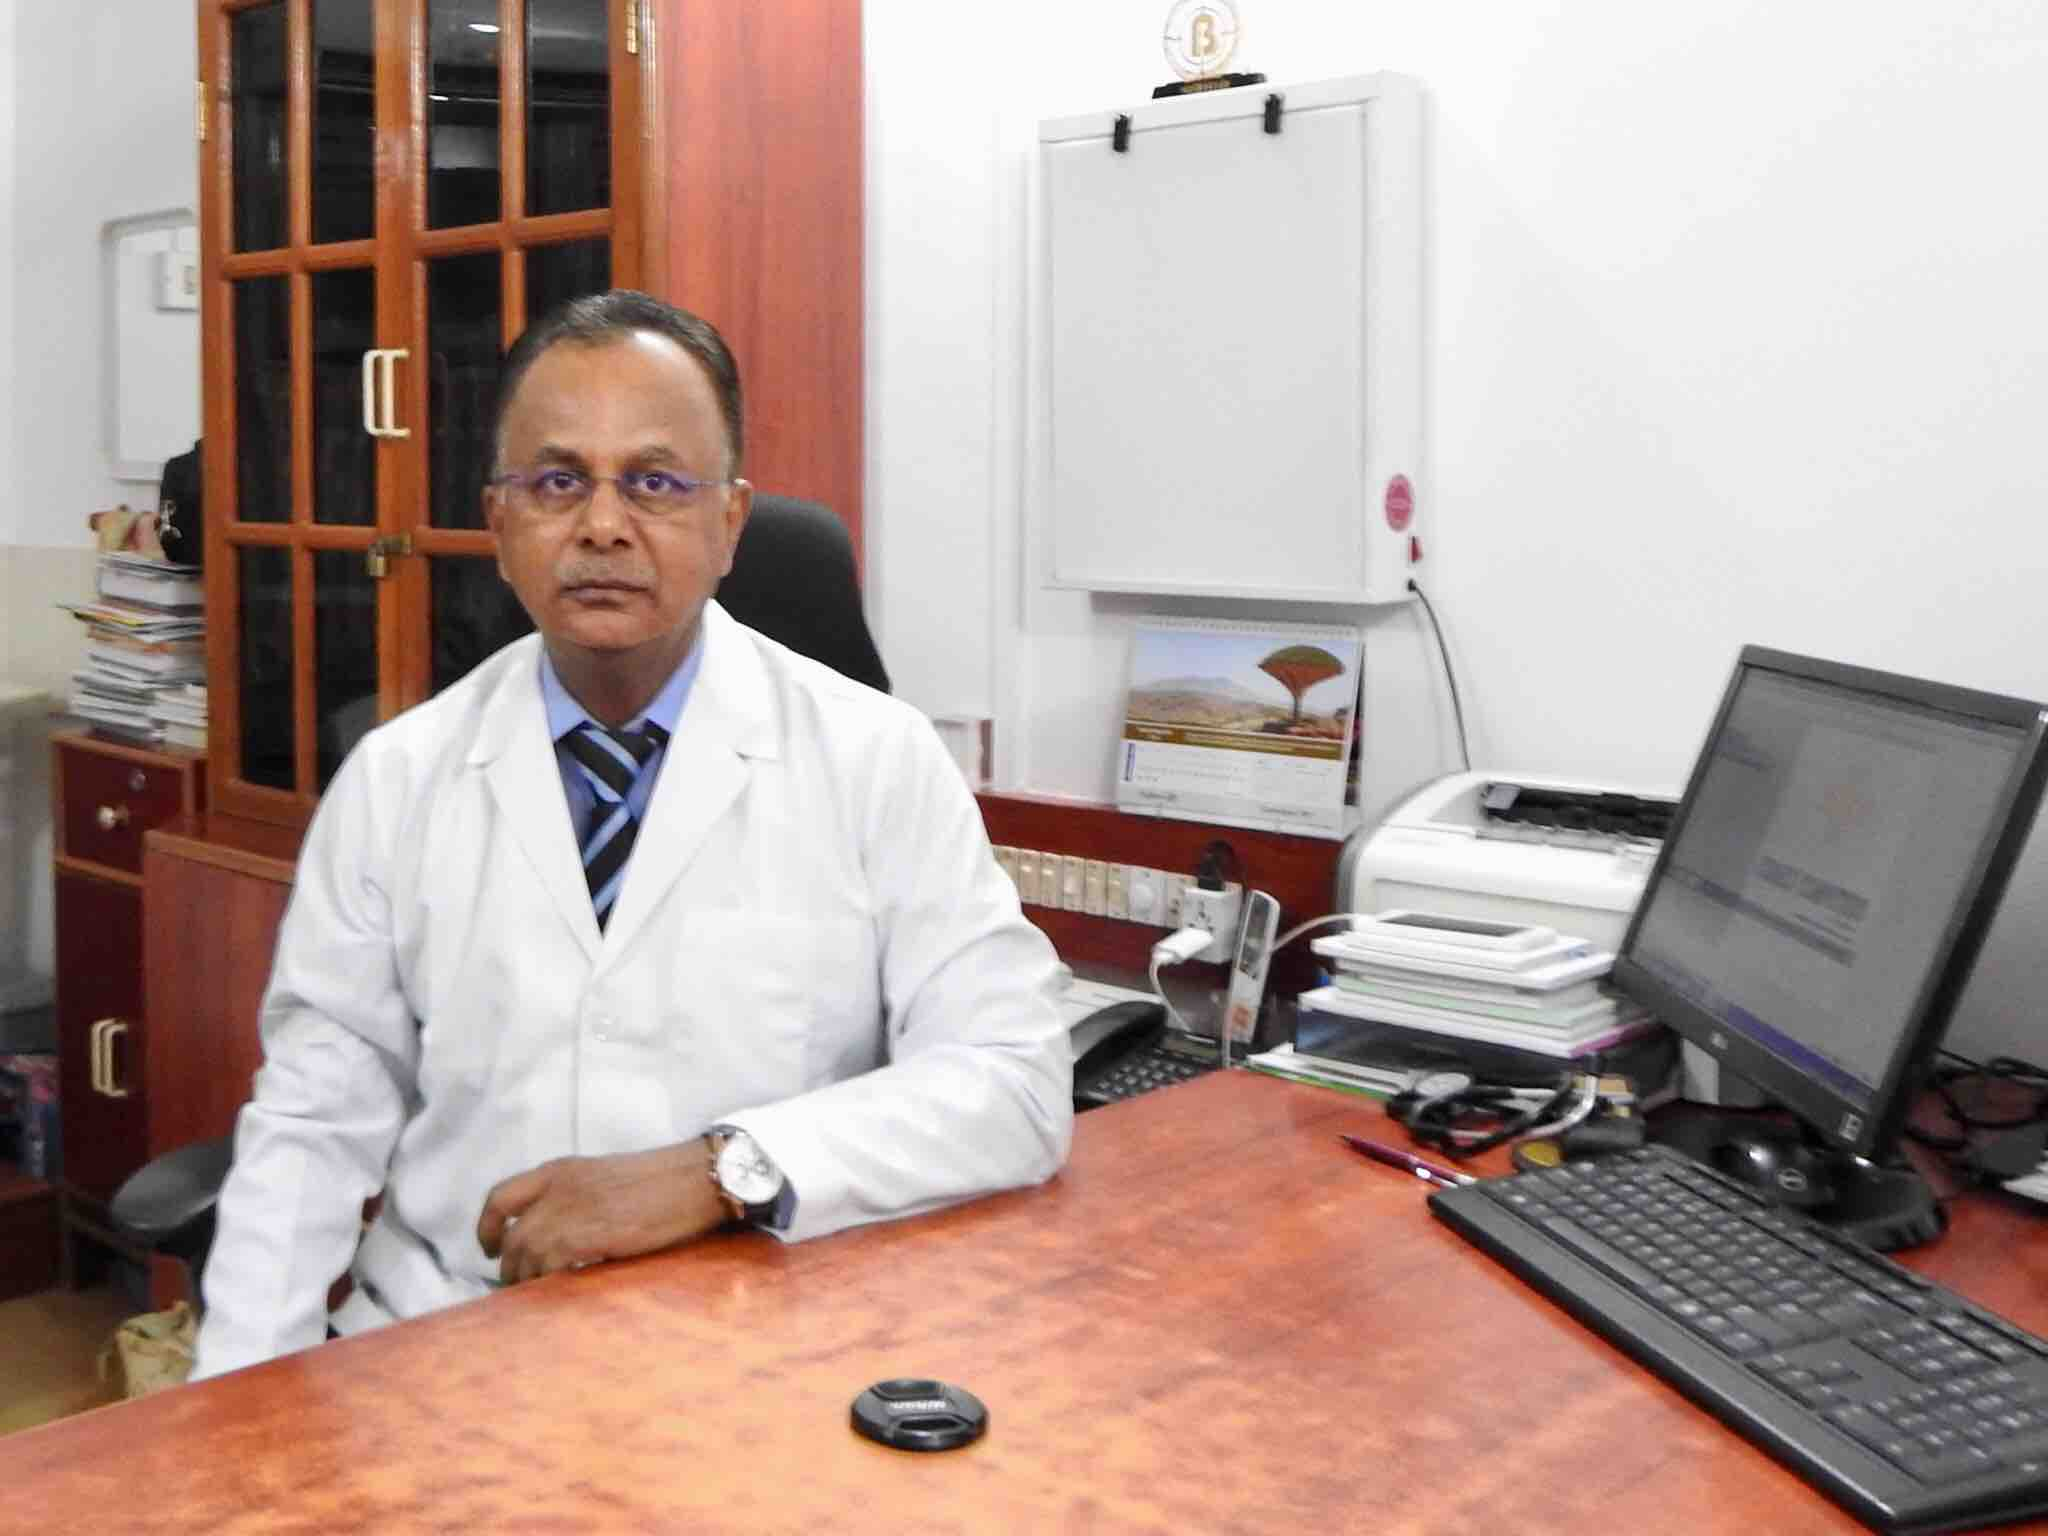 Dr. S. R. Hebbal   M. D's profile on Curofy